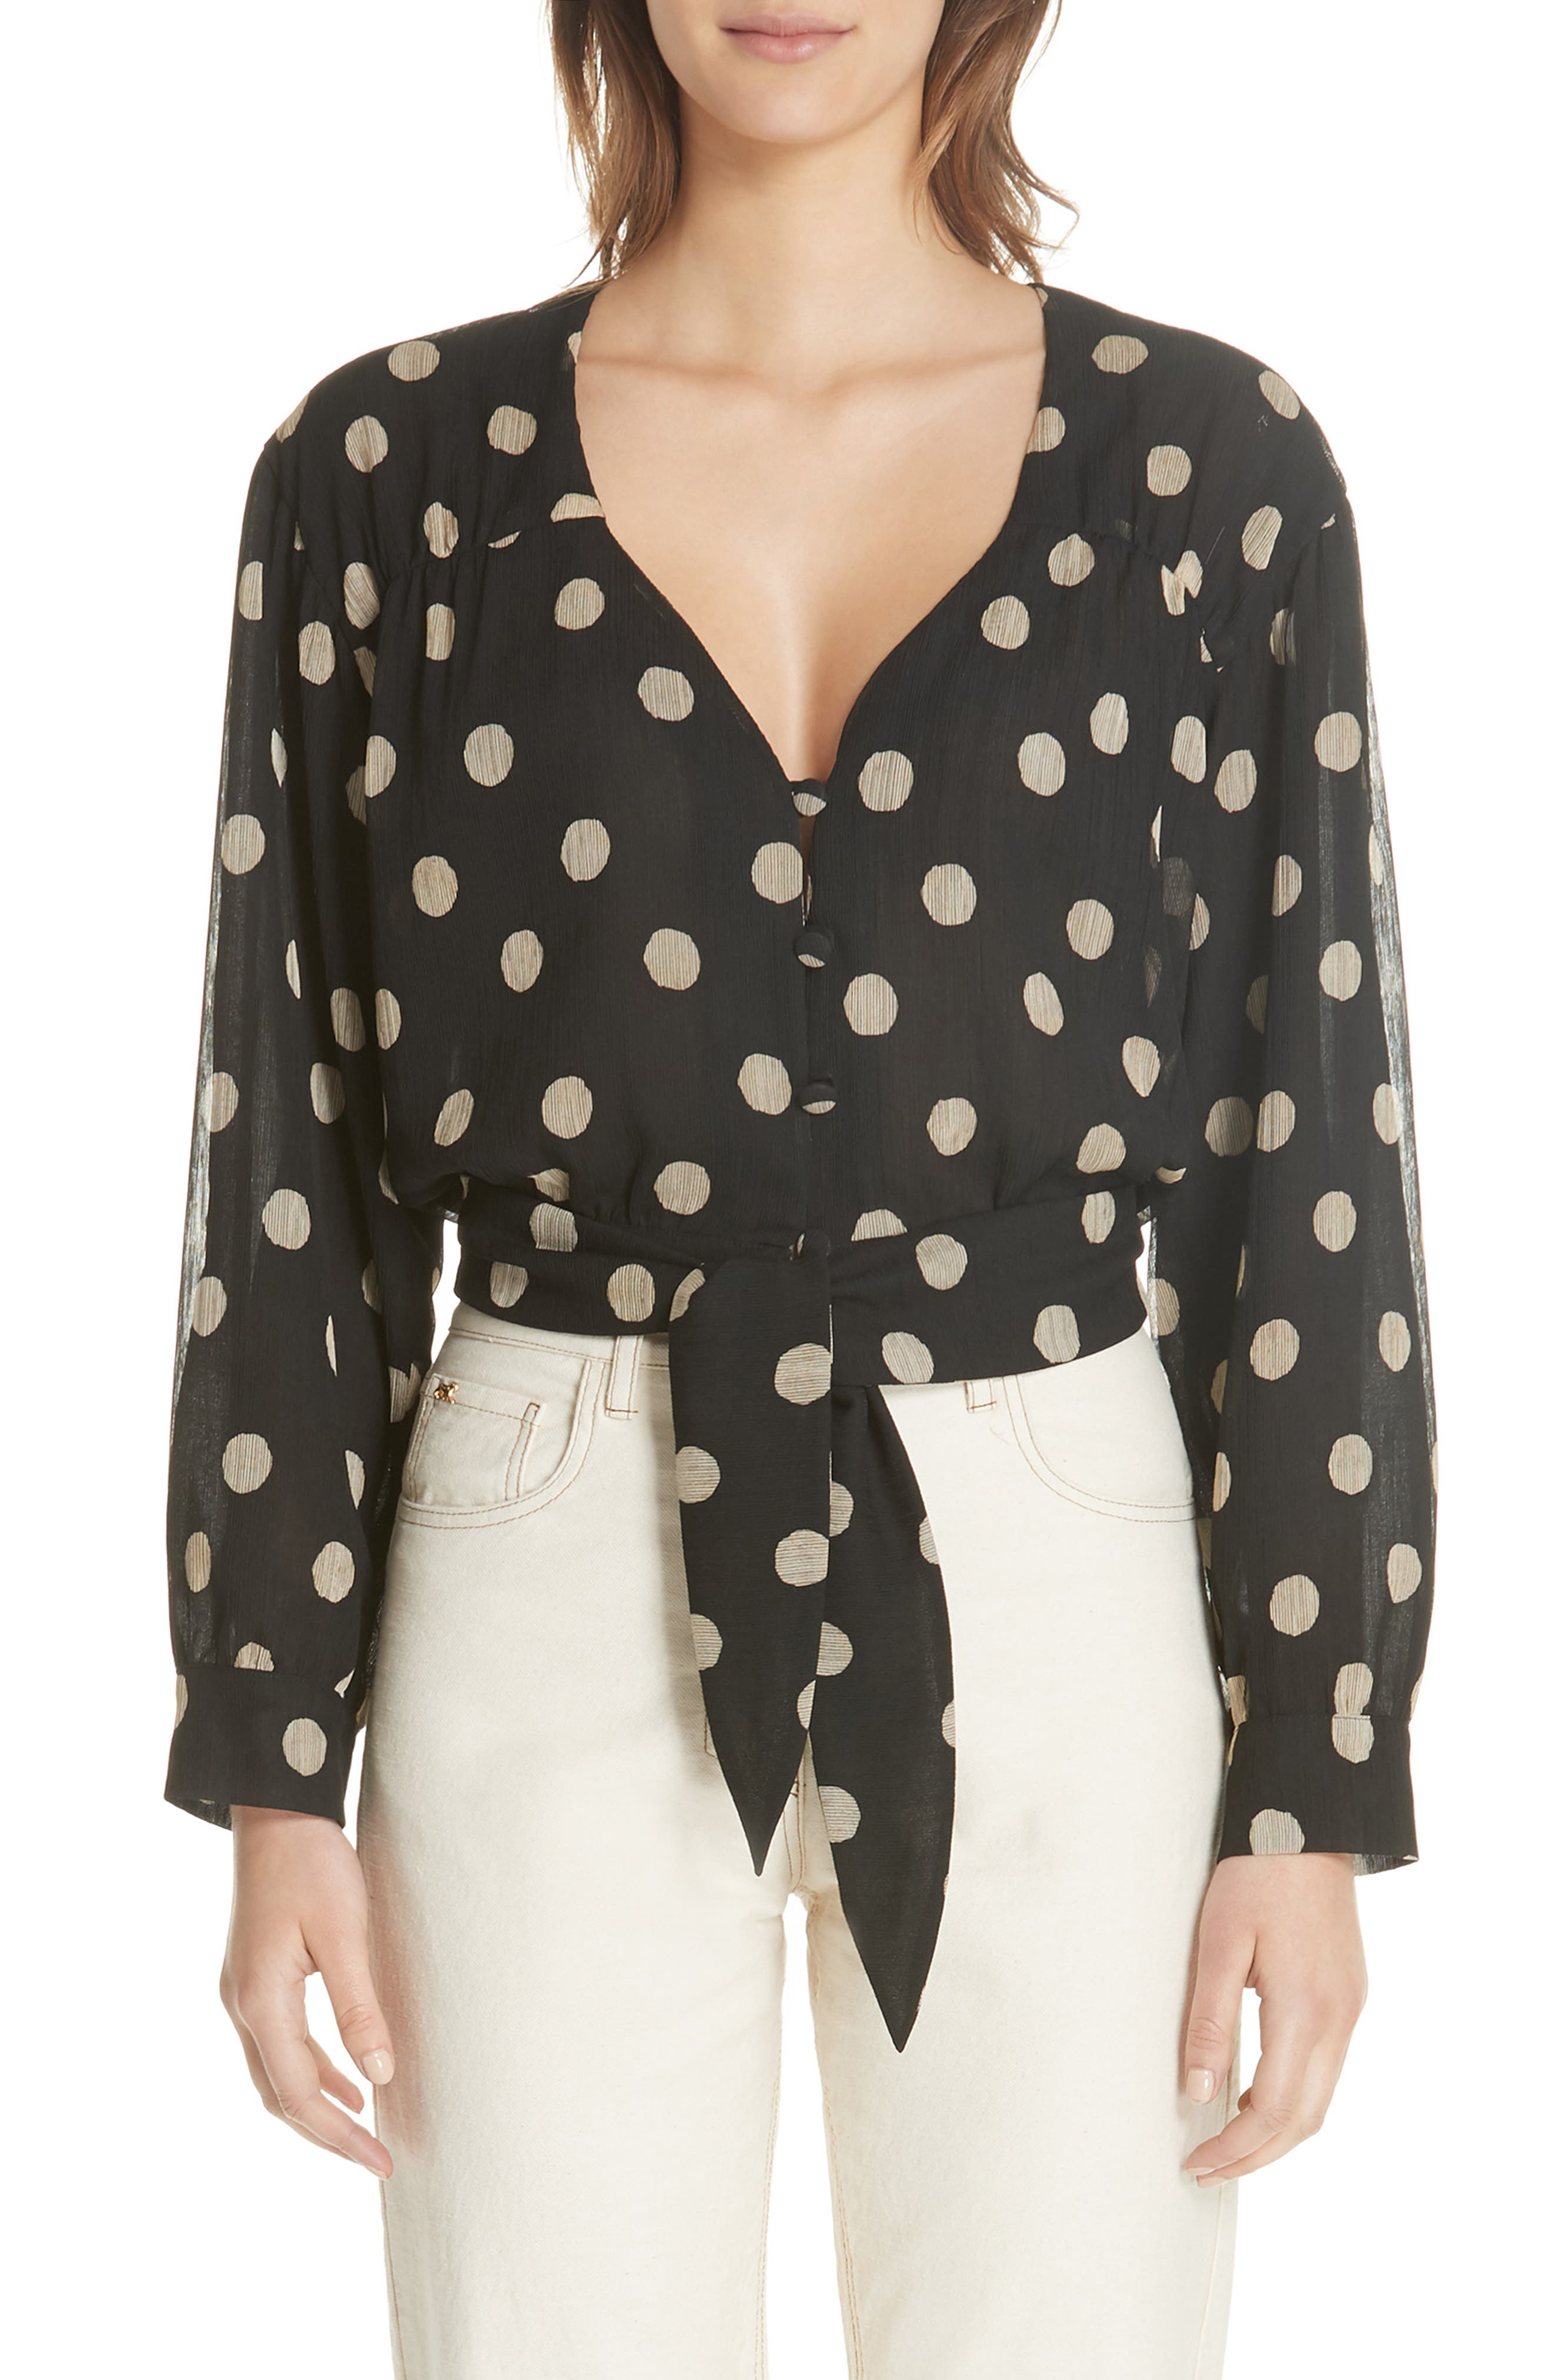 Amulet Polka Dot Tech Chiffon Blouse,                             Main thumbnail 1, color,                             Polka Dot